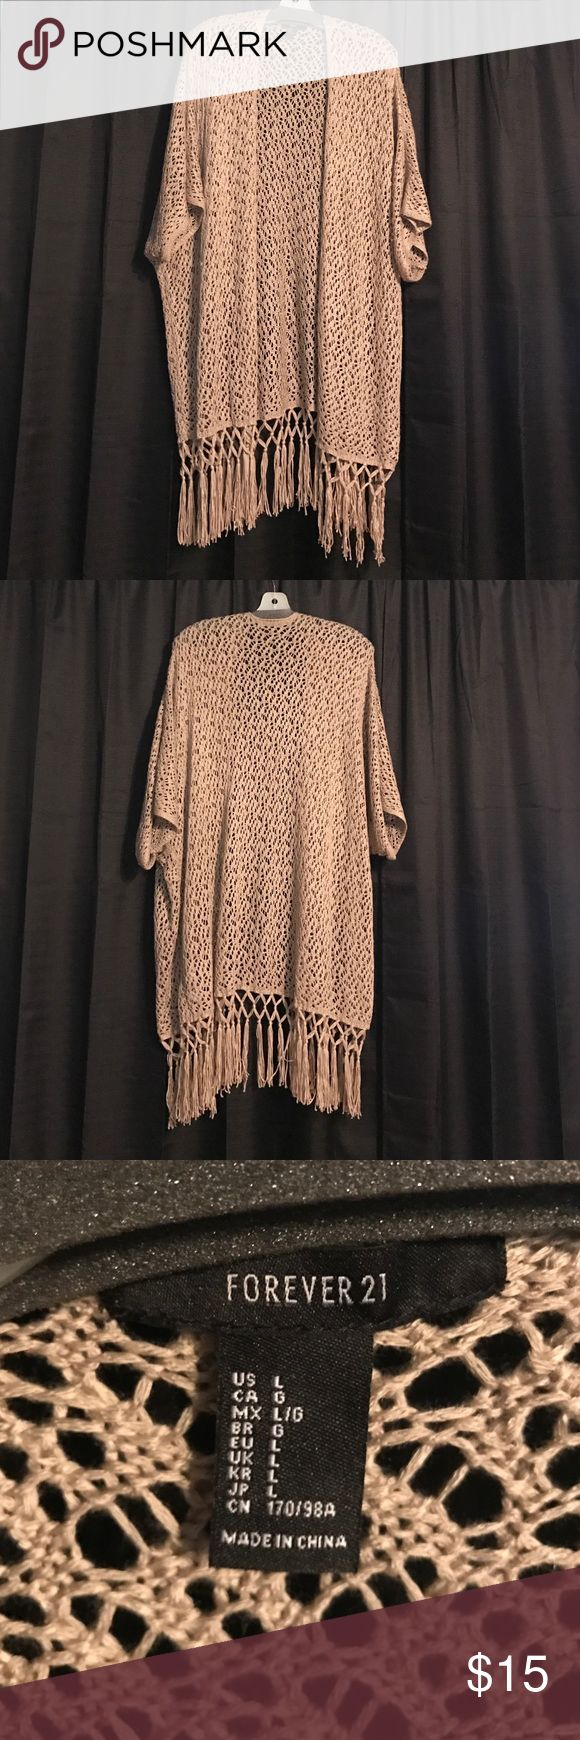 🆕💋 Fringe Cardigan Forever 21 Fringe Cardigan. 100% Acrylic. Short sleeve. Perfect! Not a pull on it! Worn once. Can easily fit an XL or 1X. Forever 21 Sweaters Cardigans